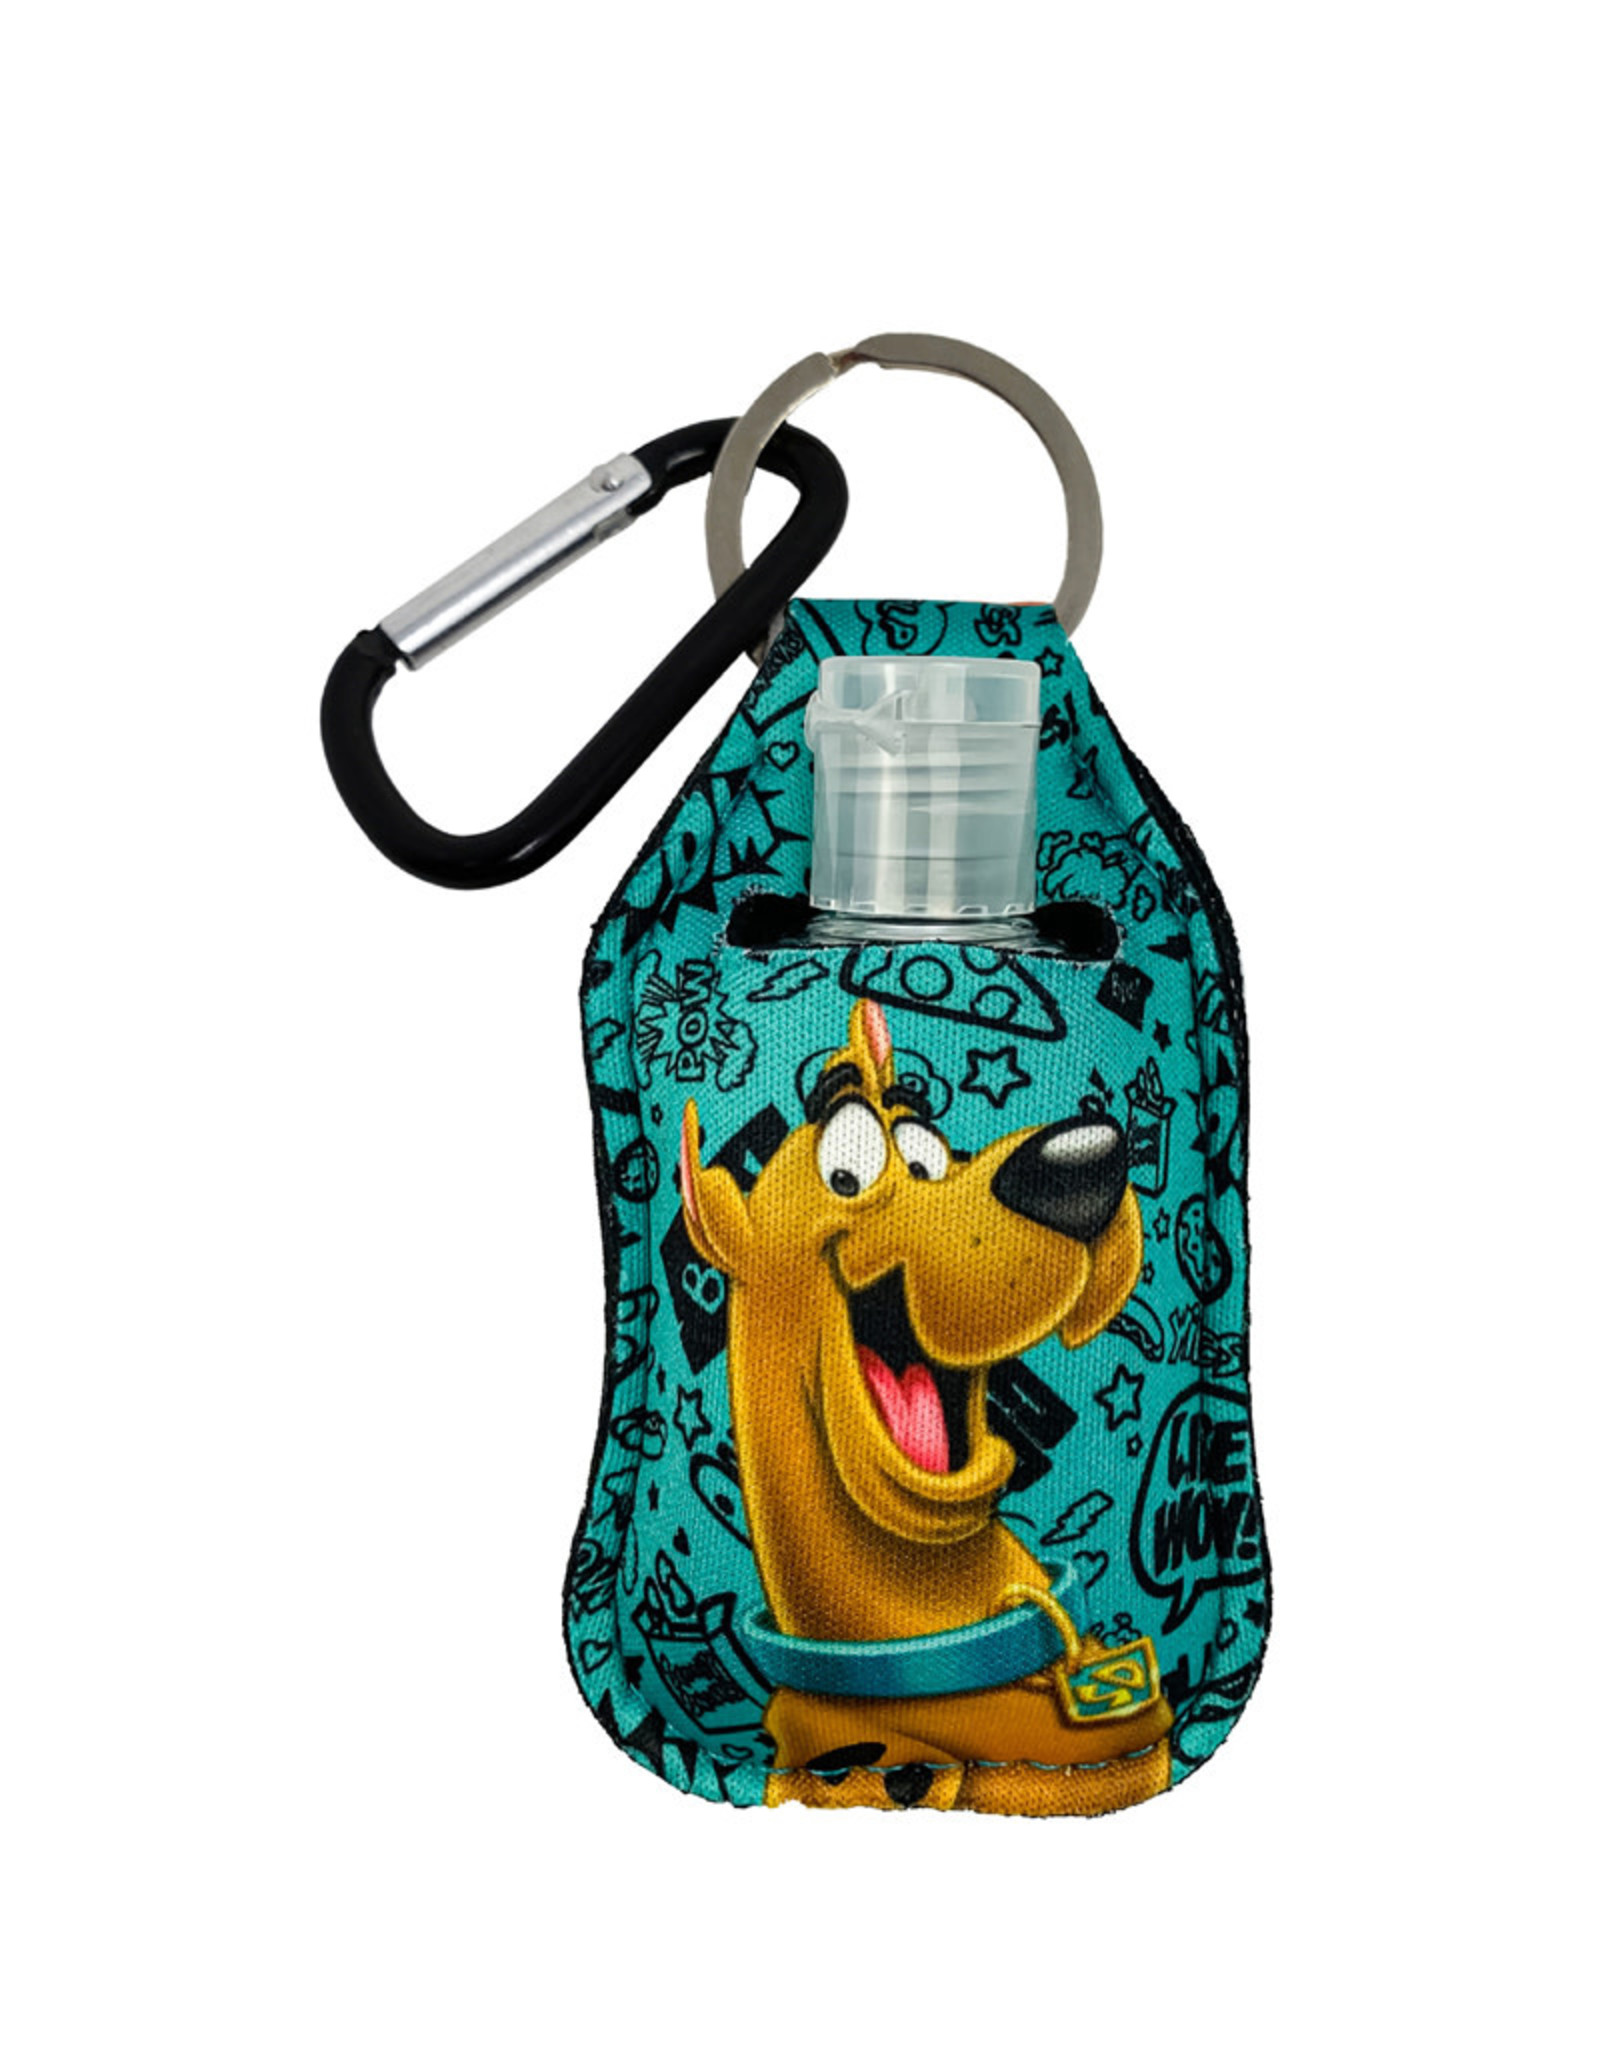 Scooby-Doo ( Hand Sanitizer Holder )